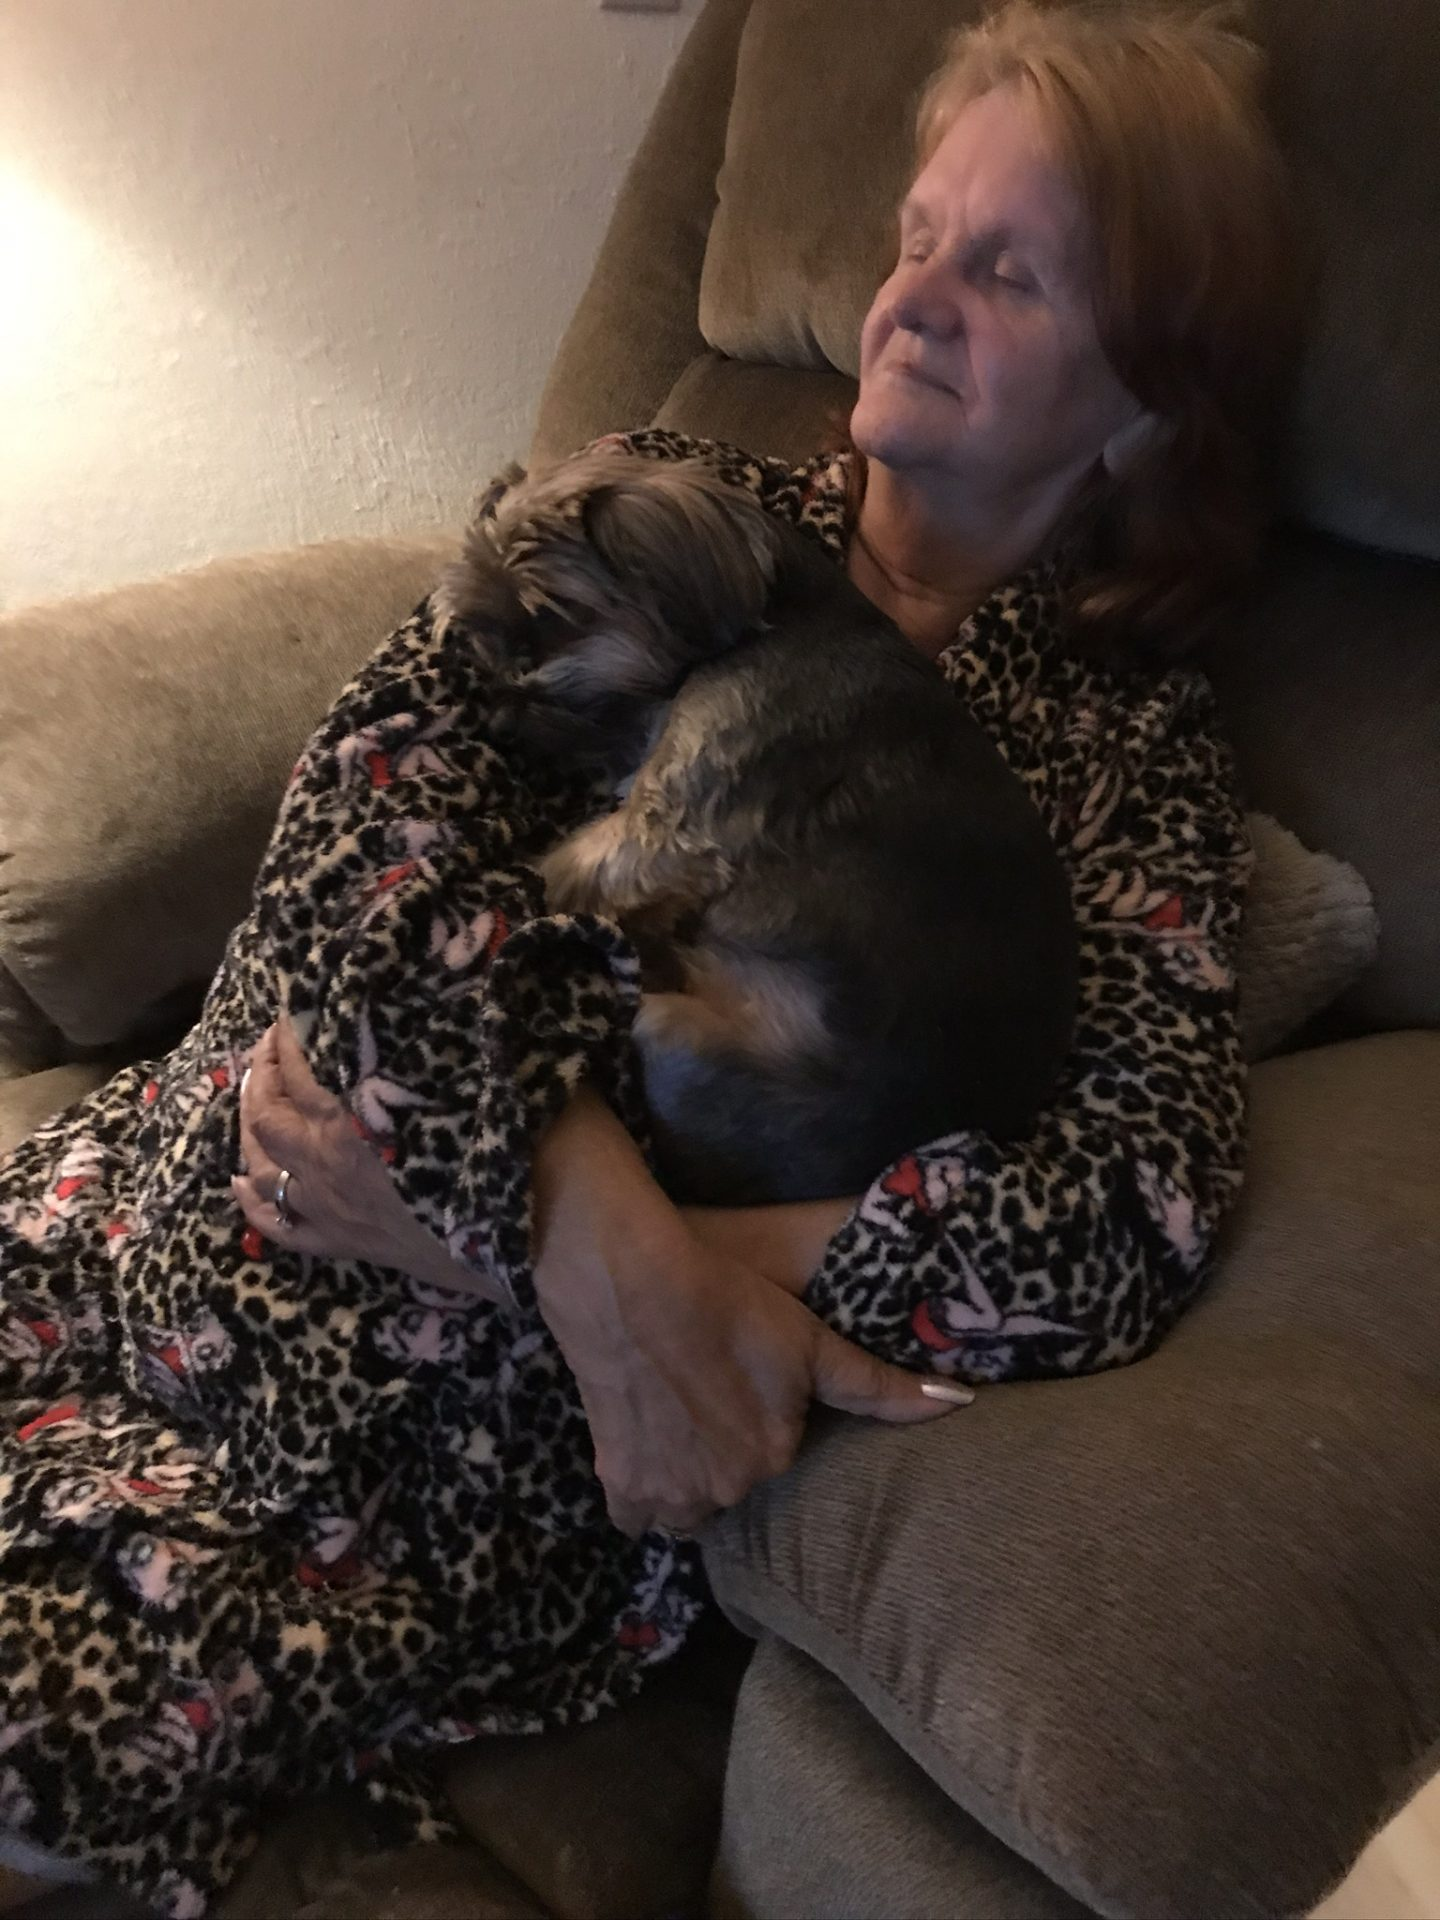 Beth with BooBoo, she loved her little dog with all her heart, BooBoo was her baby girl